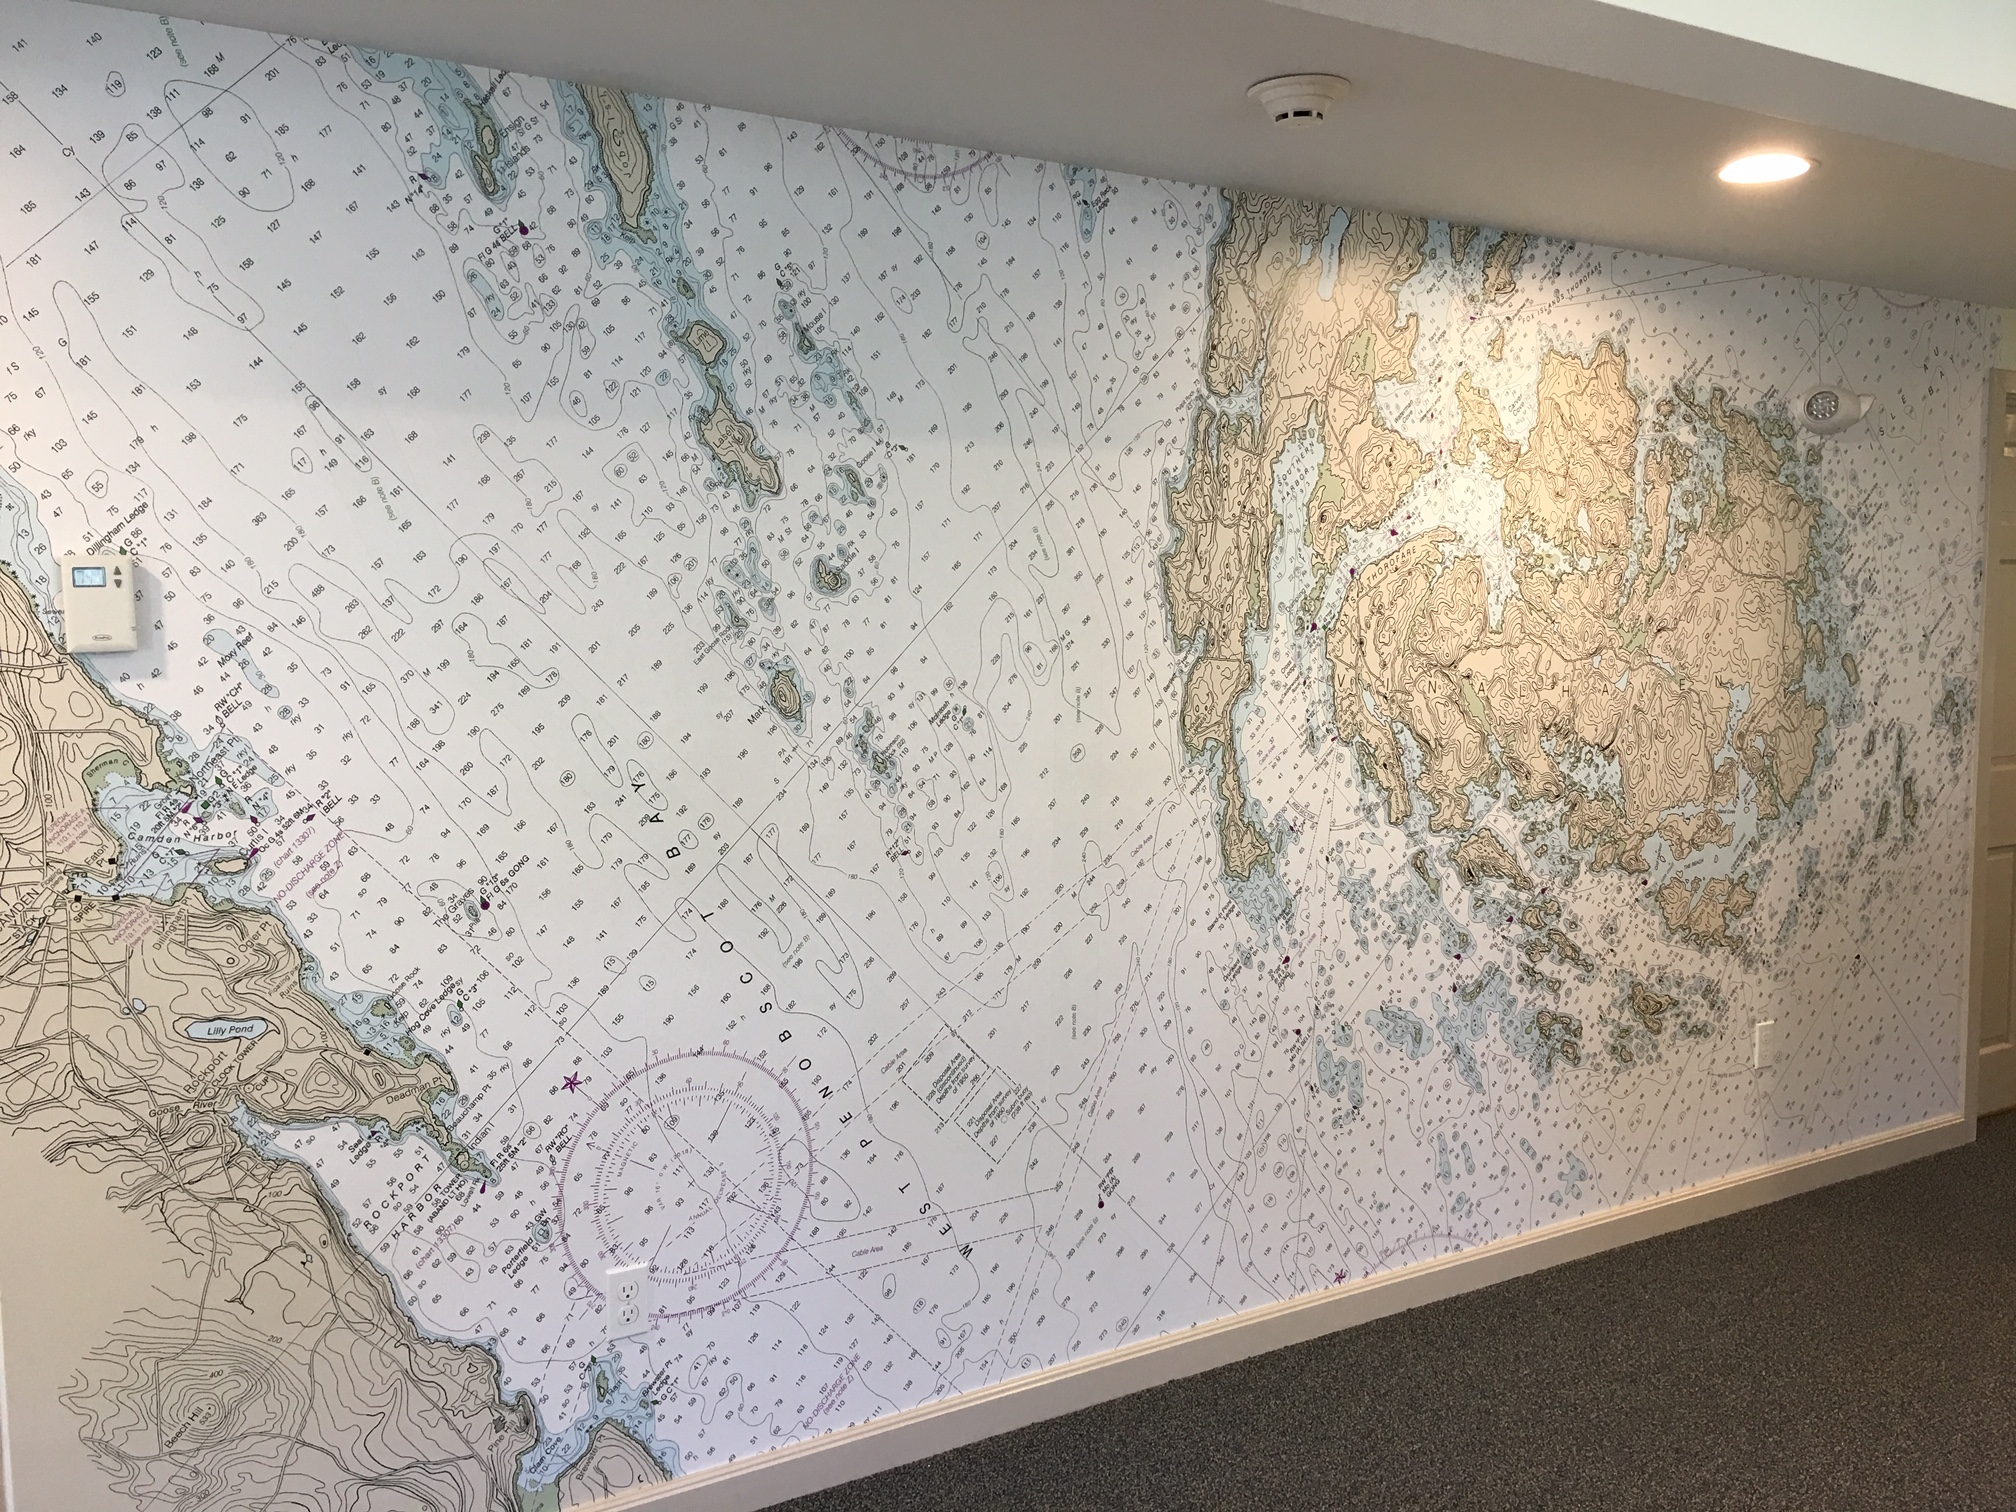 This fabulous mural is in Brimstone Consulting and presents an area from Camden to Brimstone Island. Paul Fagan and Whitney Zipser of Whitney Zipser Design created this stunning mural.